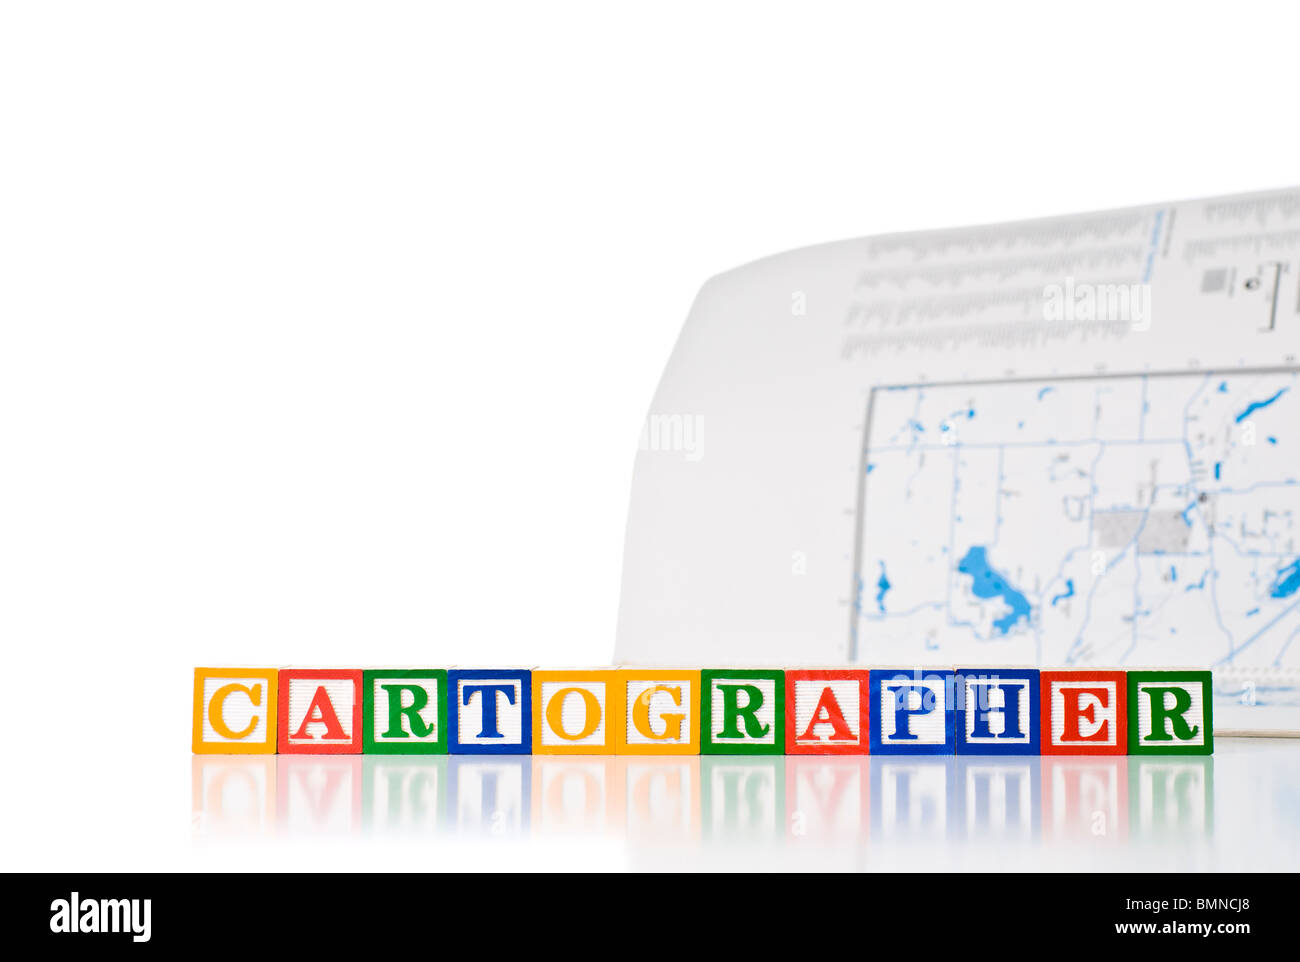 Colorful children's blocks spelling CARTOGRAPHER with a map - Stock Image